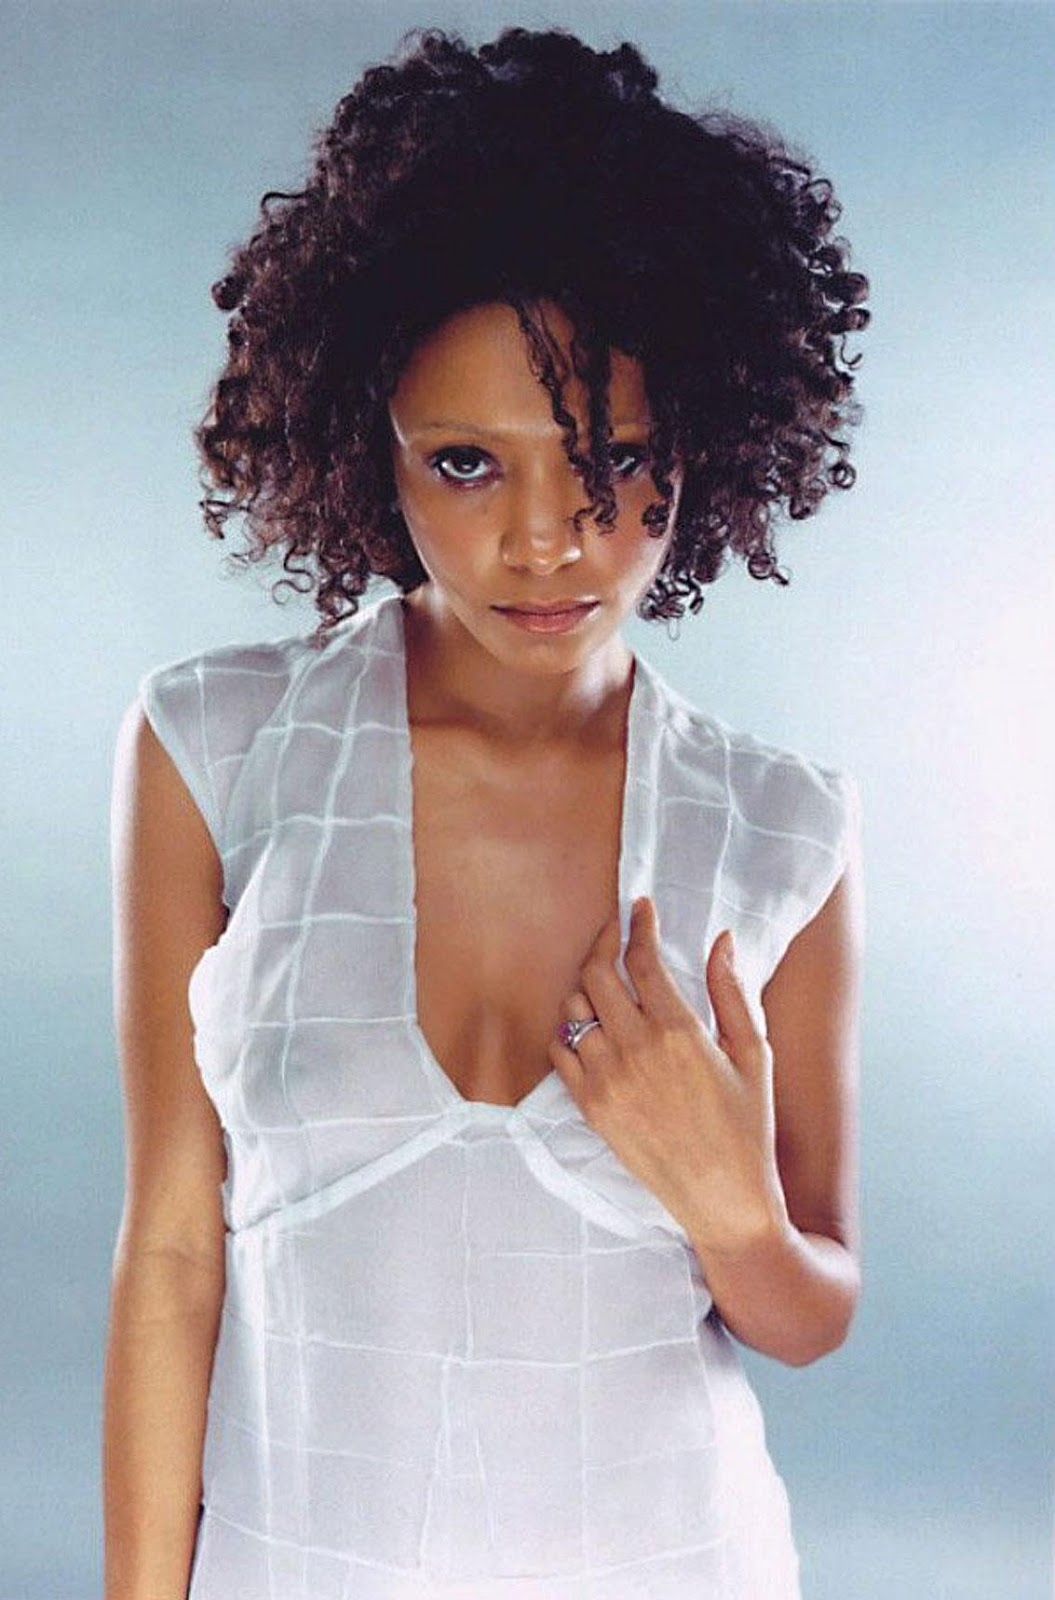 Entertaining Thandie newton nude pictures can